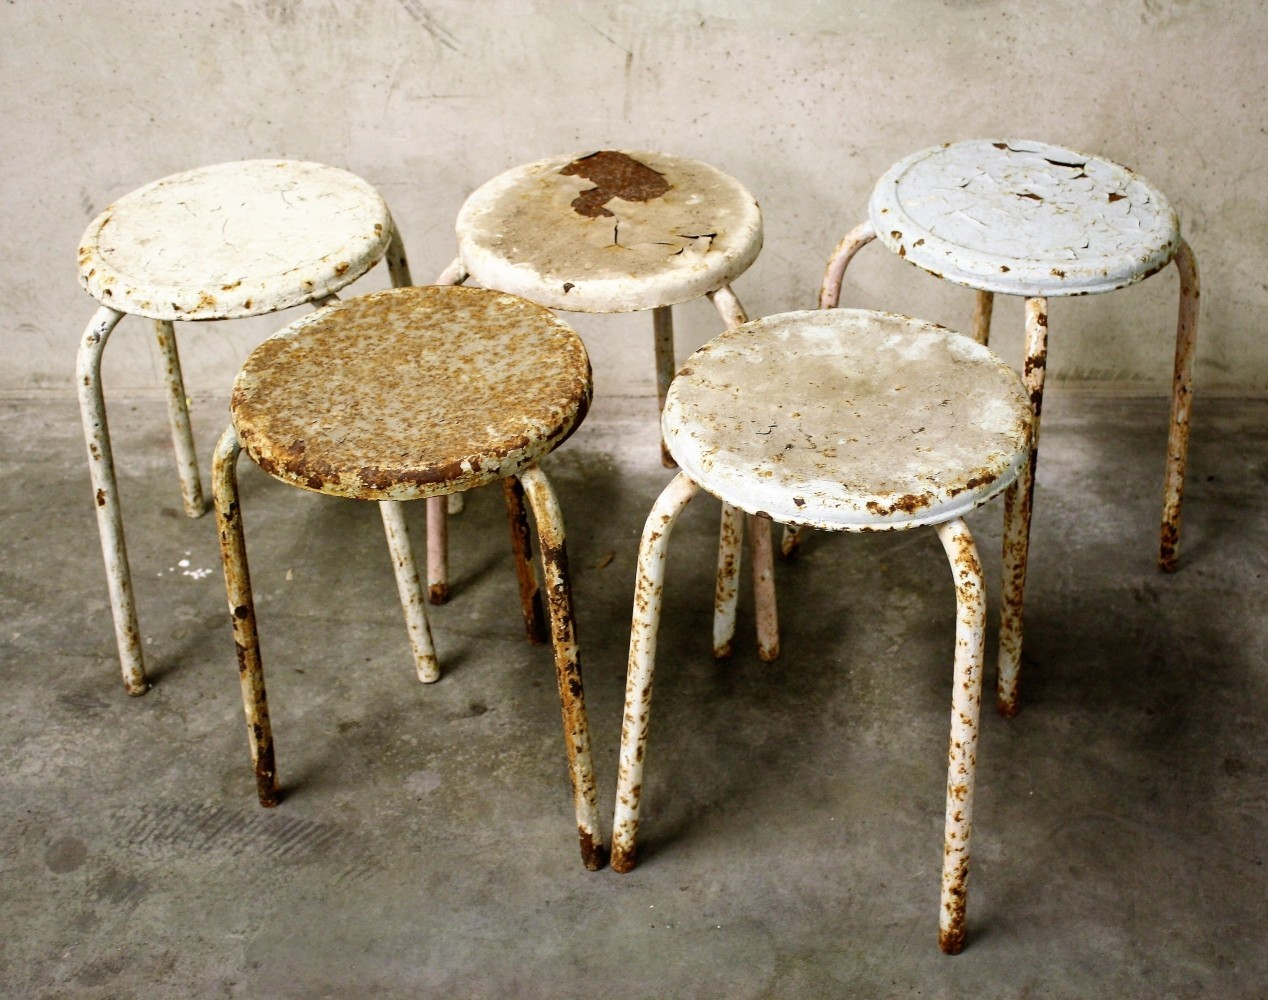 Set of 5 Decorative industrial stools, 1960s